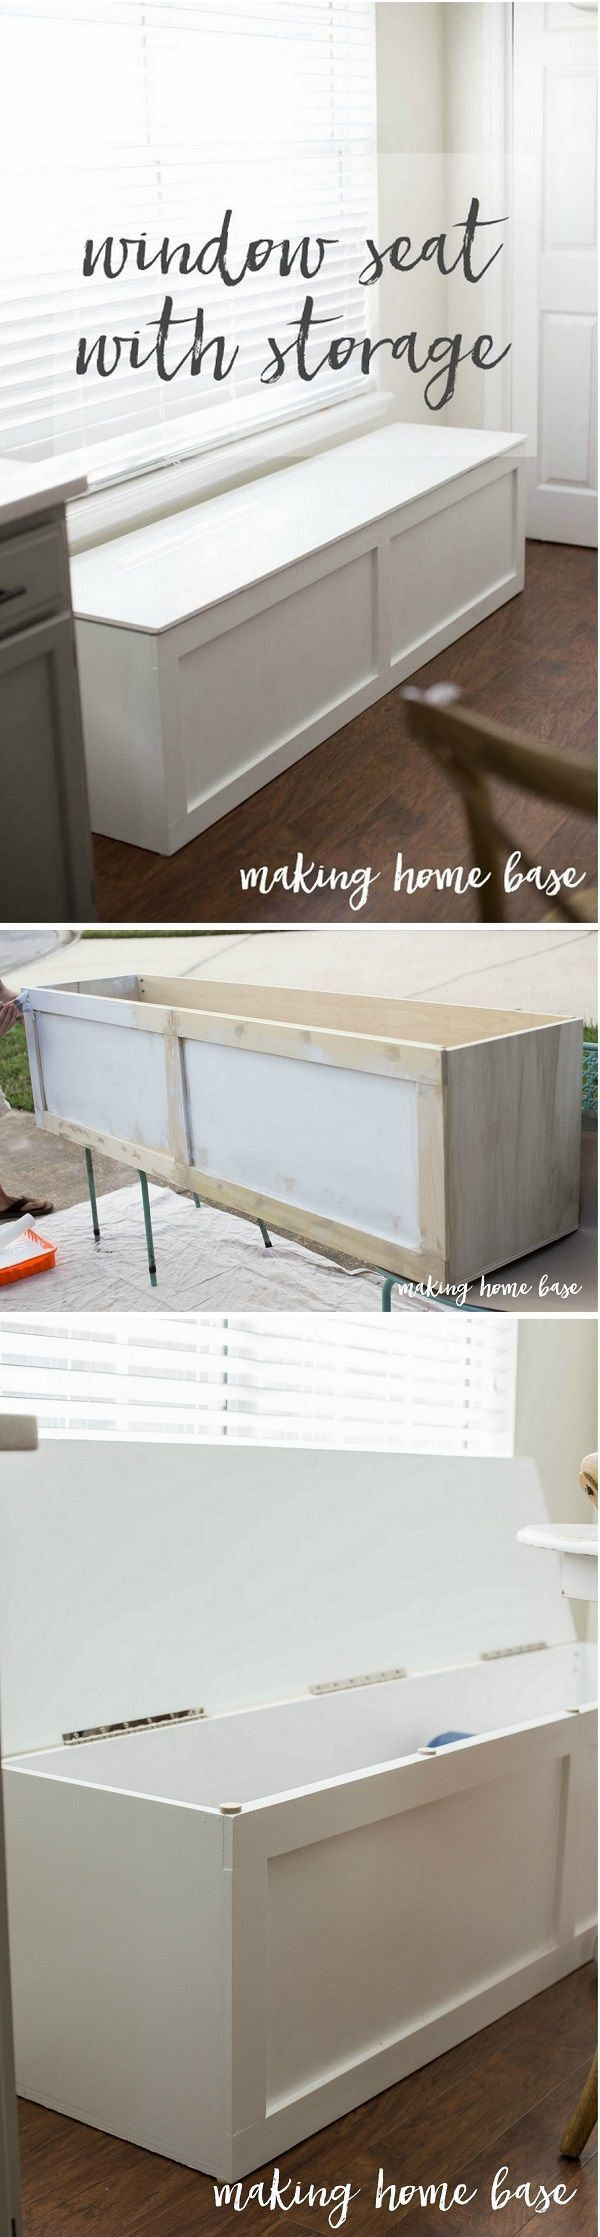 Check out how to build an easy DIY window seat with storage @istandarddesign